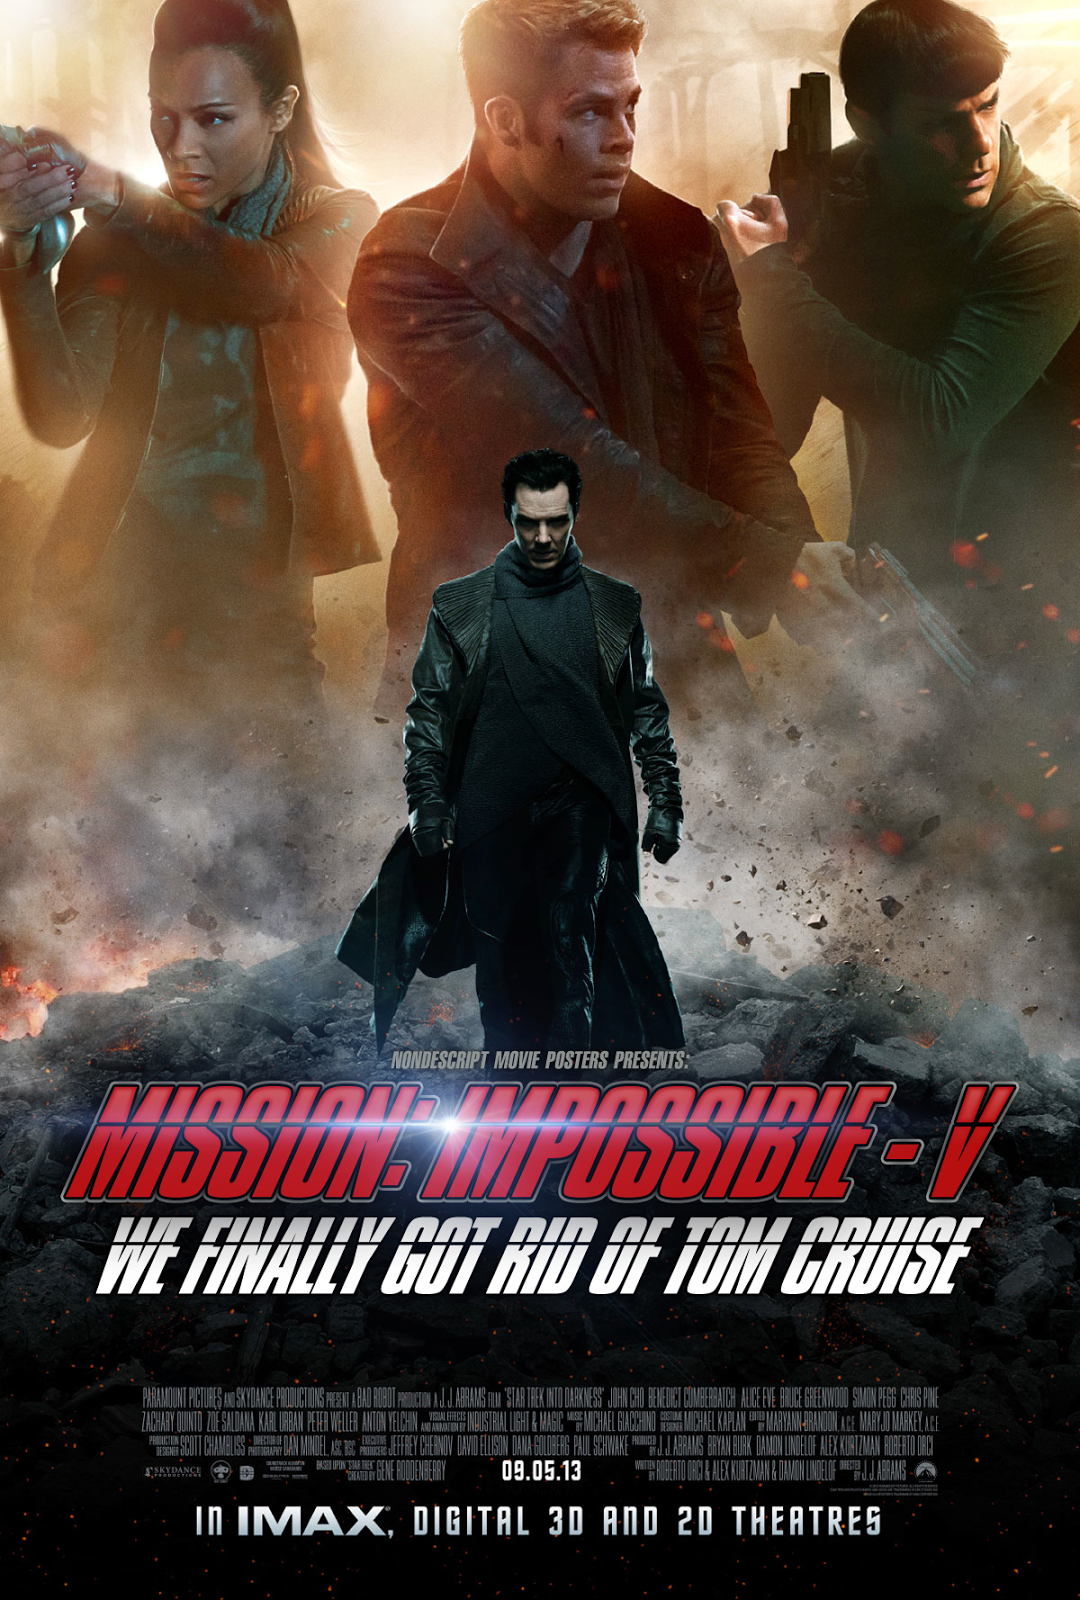 Download Full HD Movie Free Mission Impossible 5 Star